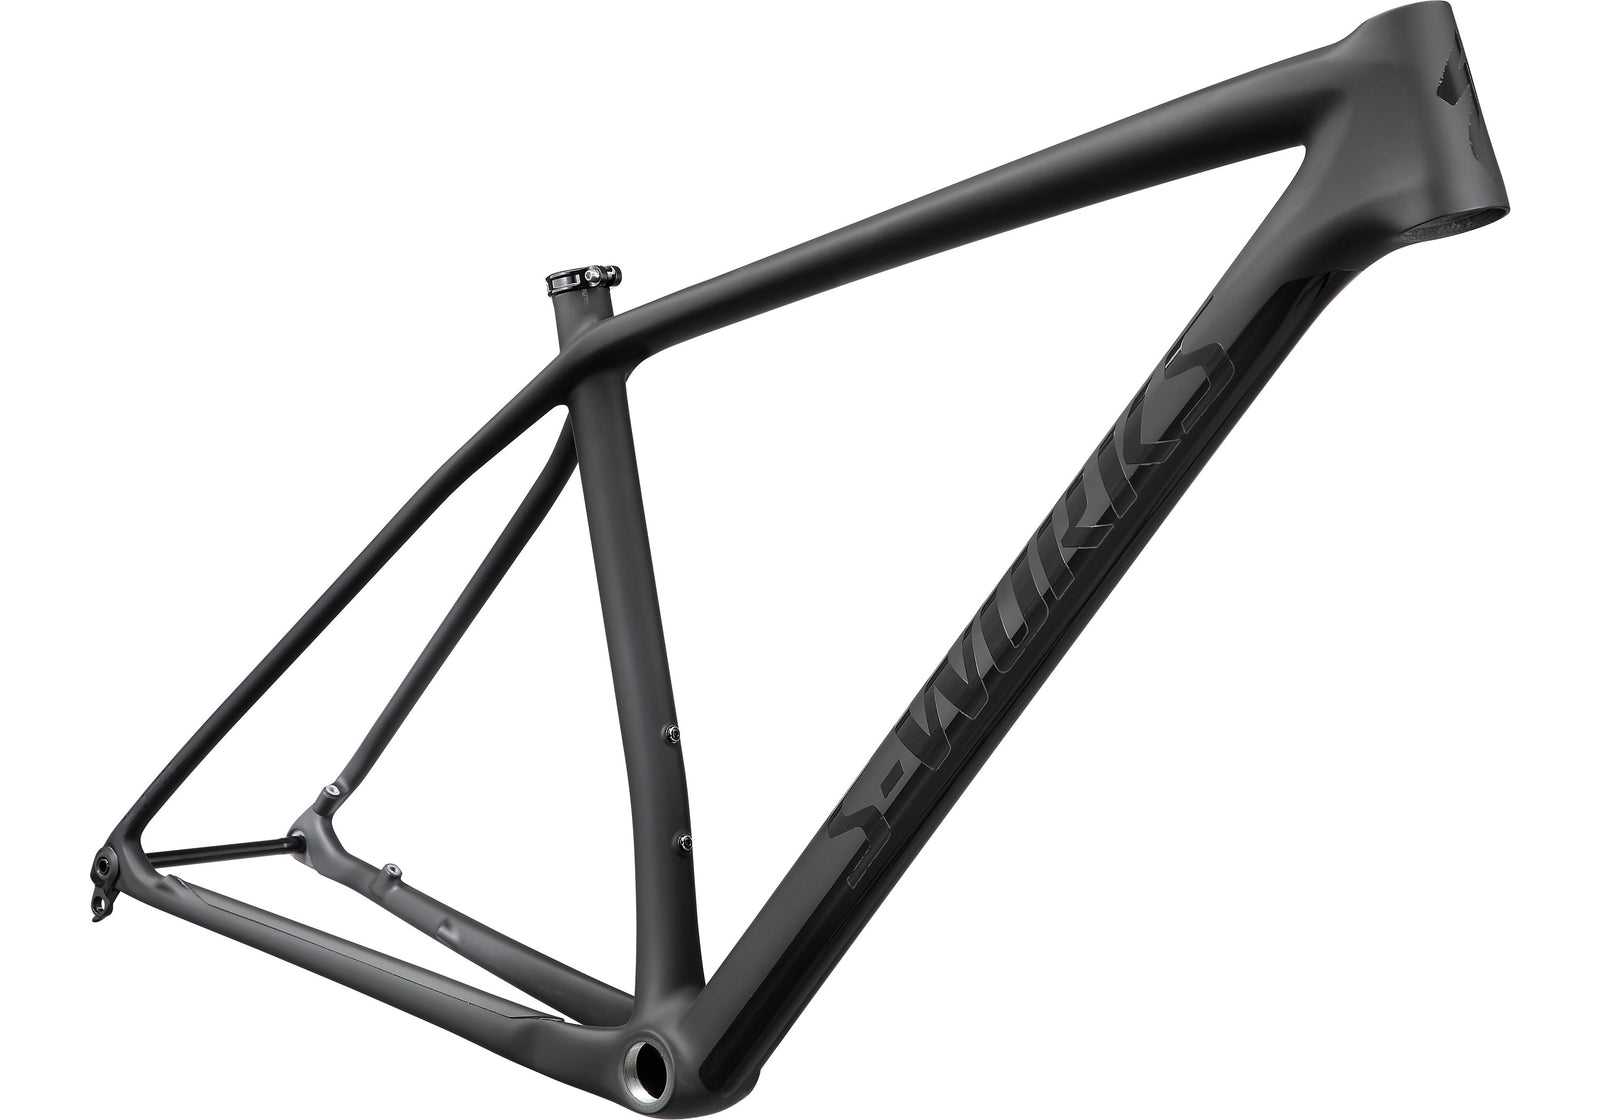 All-New S-Works Epic Hardtail Frame